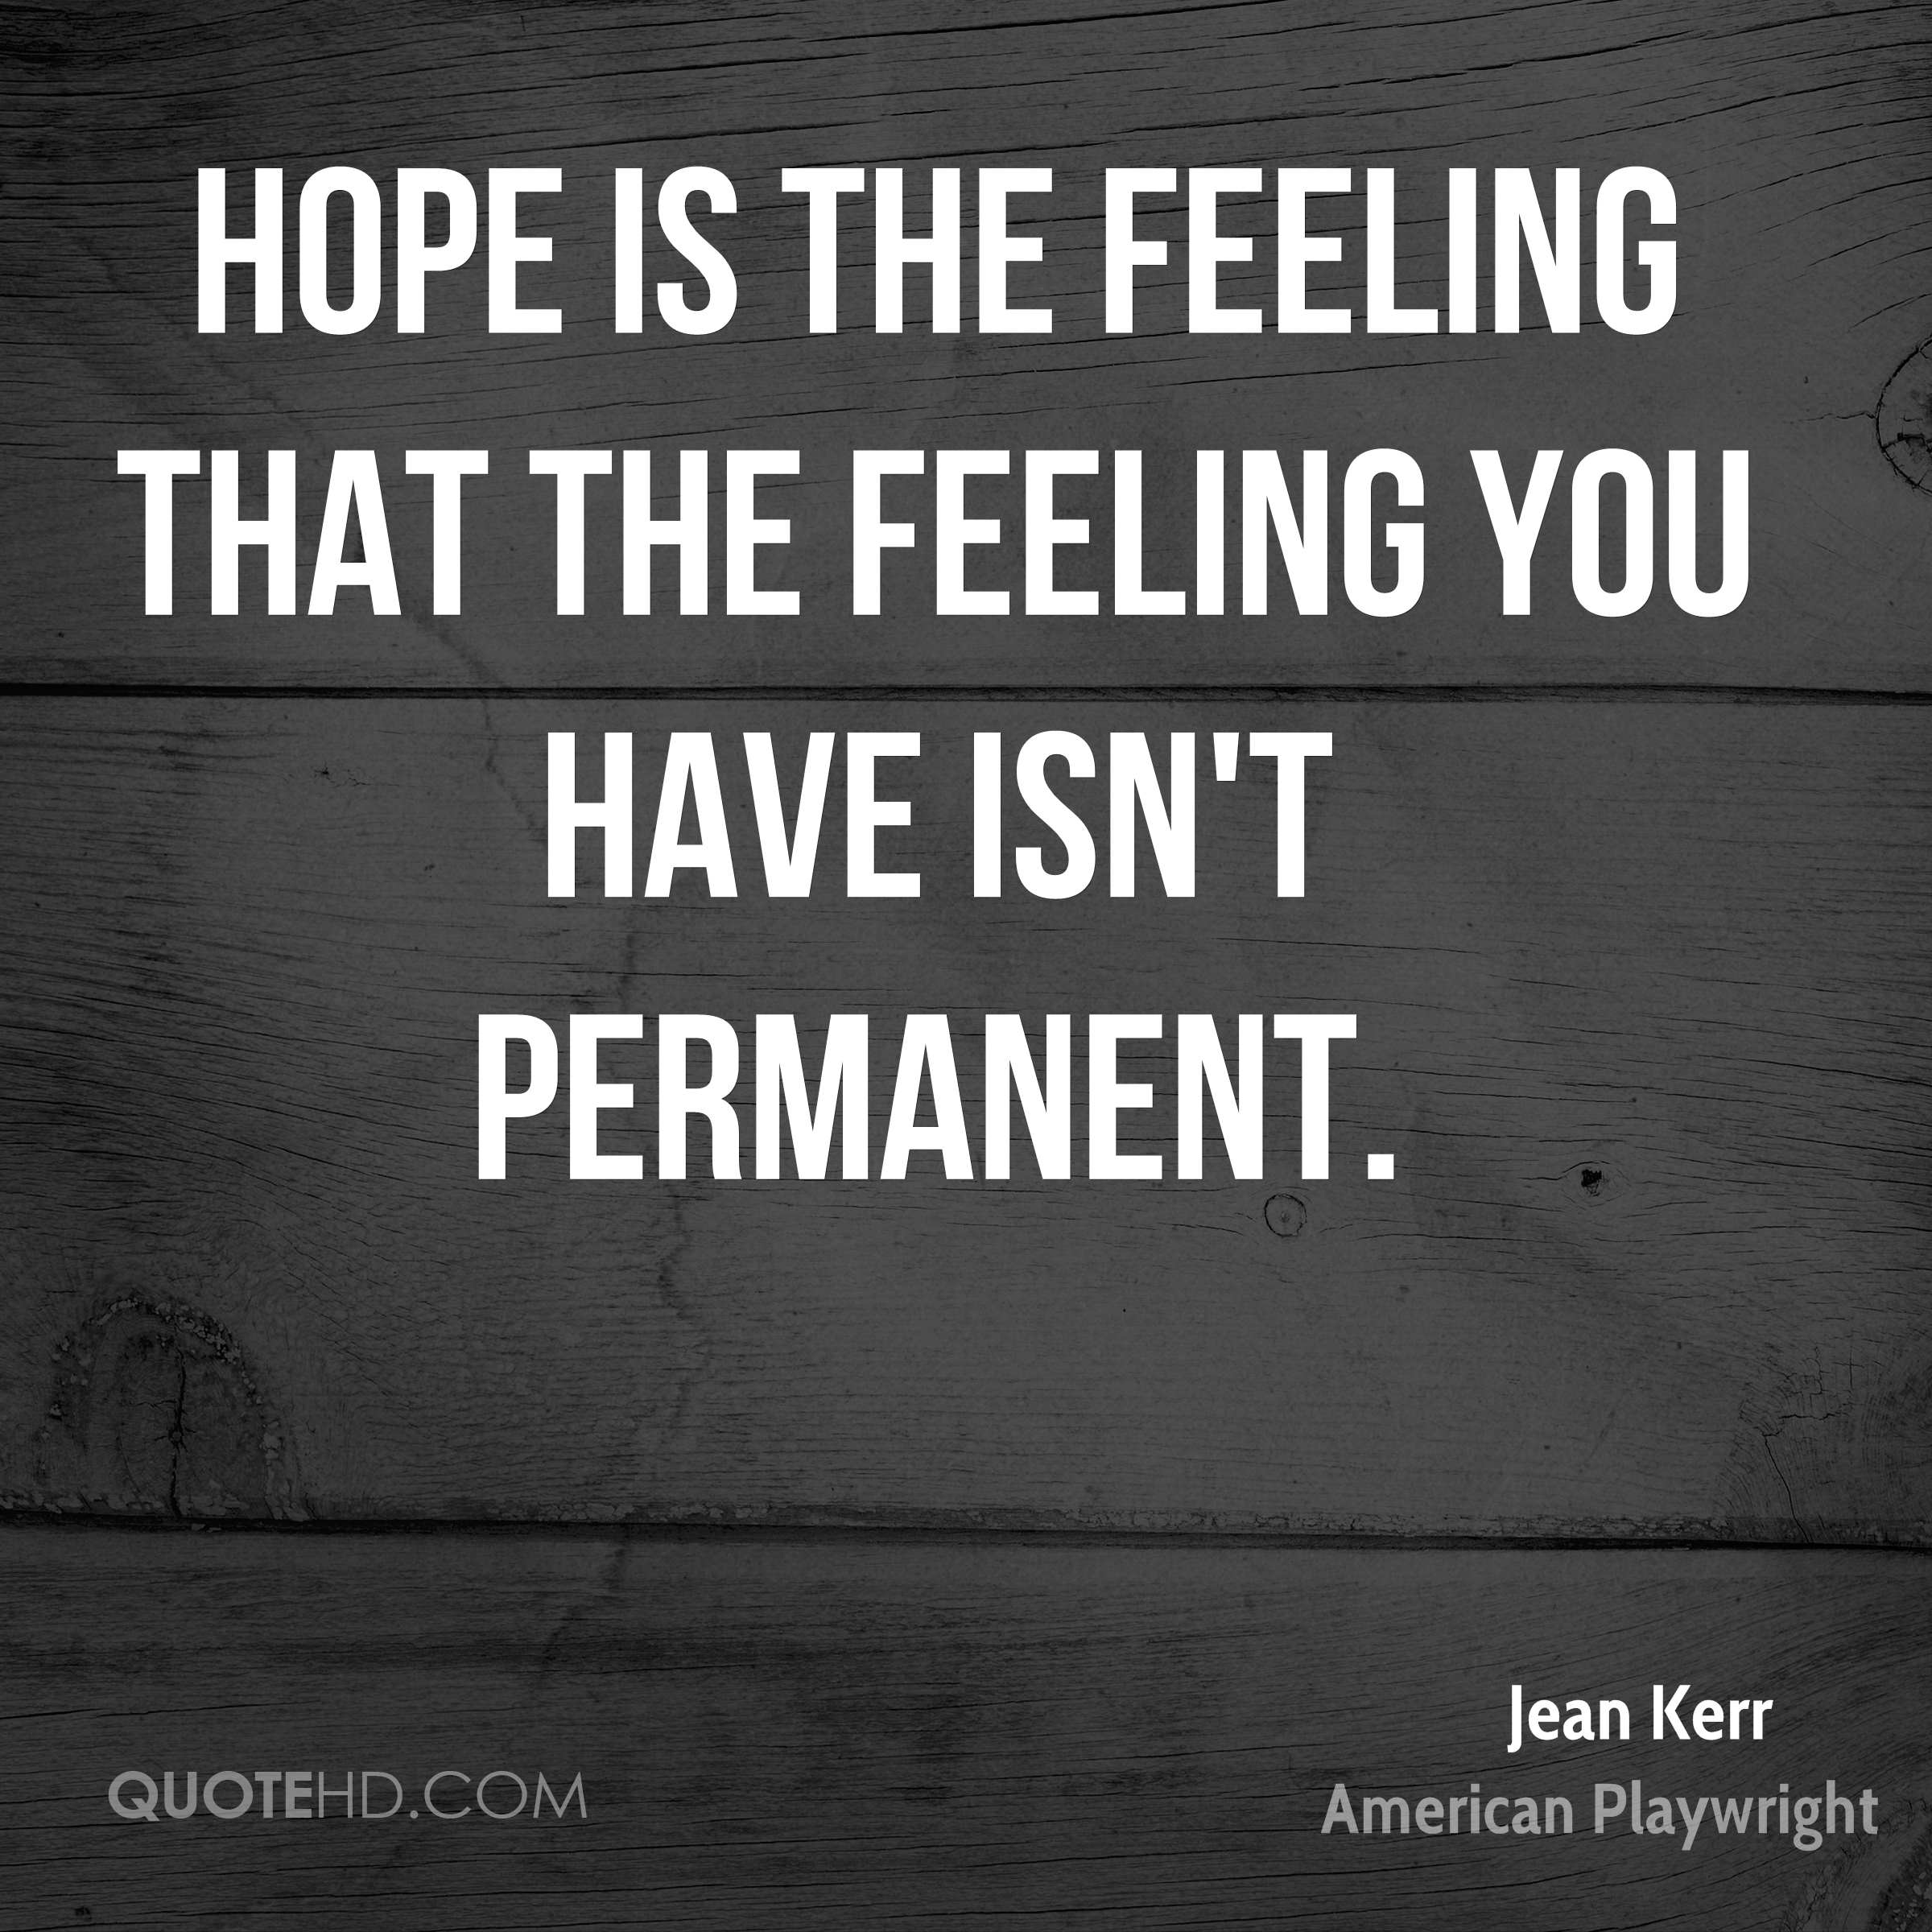 Hope is the feeling that the feeling you have isn't permanent.